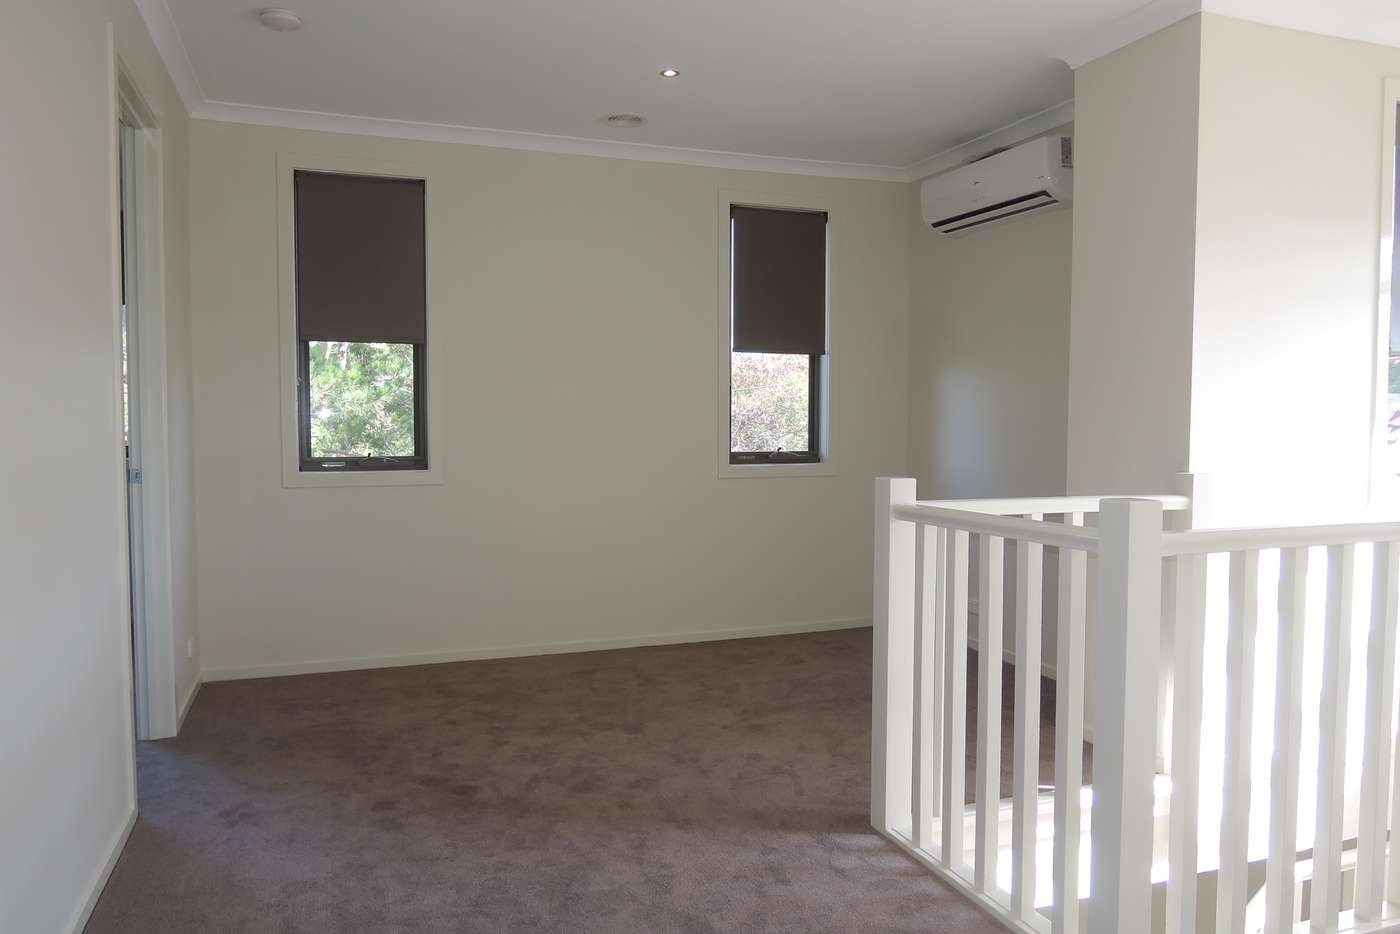 Sixth view of Homely townhouse listing, 1/17 Richard Street, Doncaster East VIC 3109